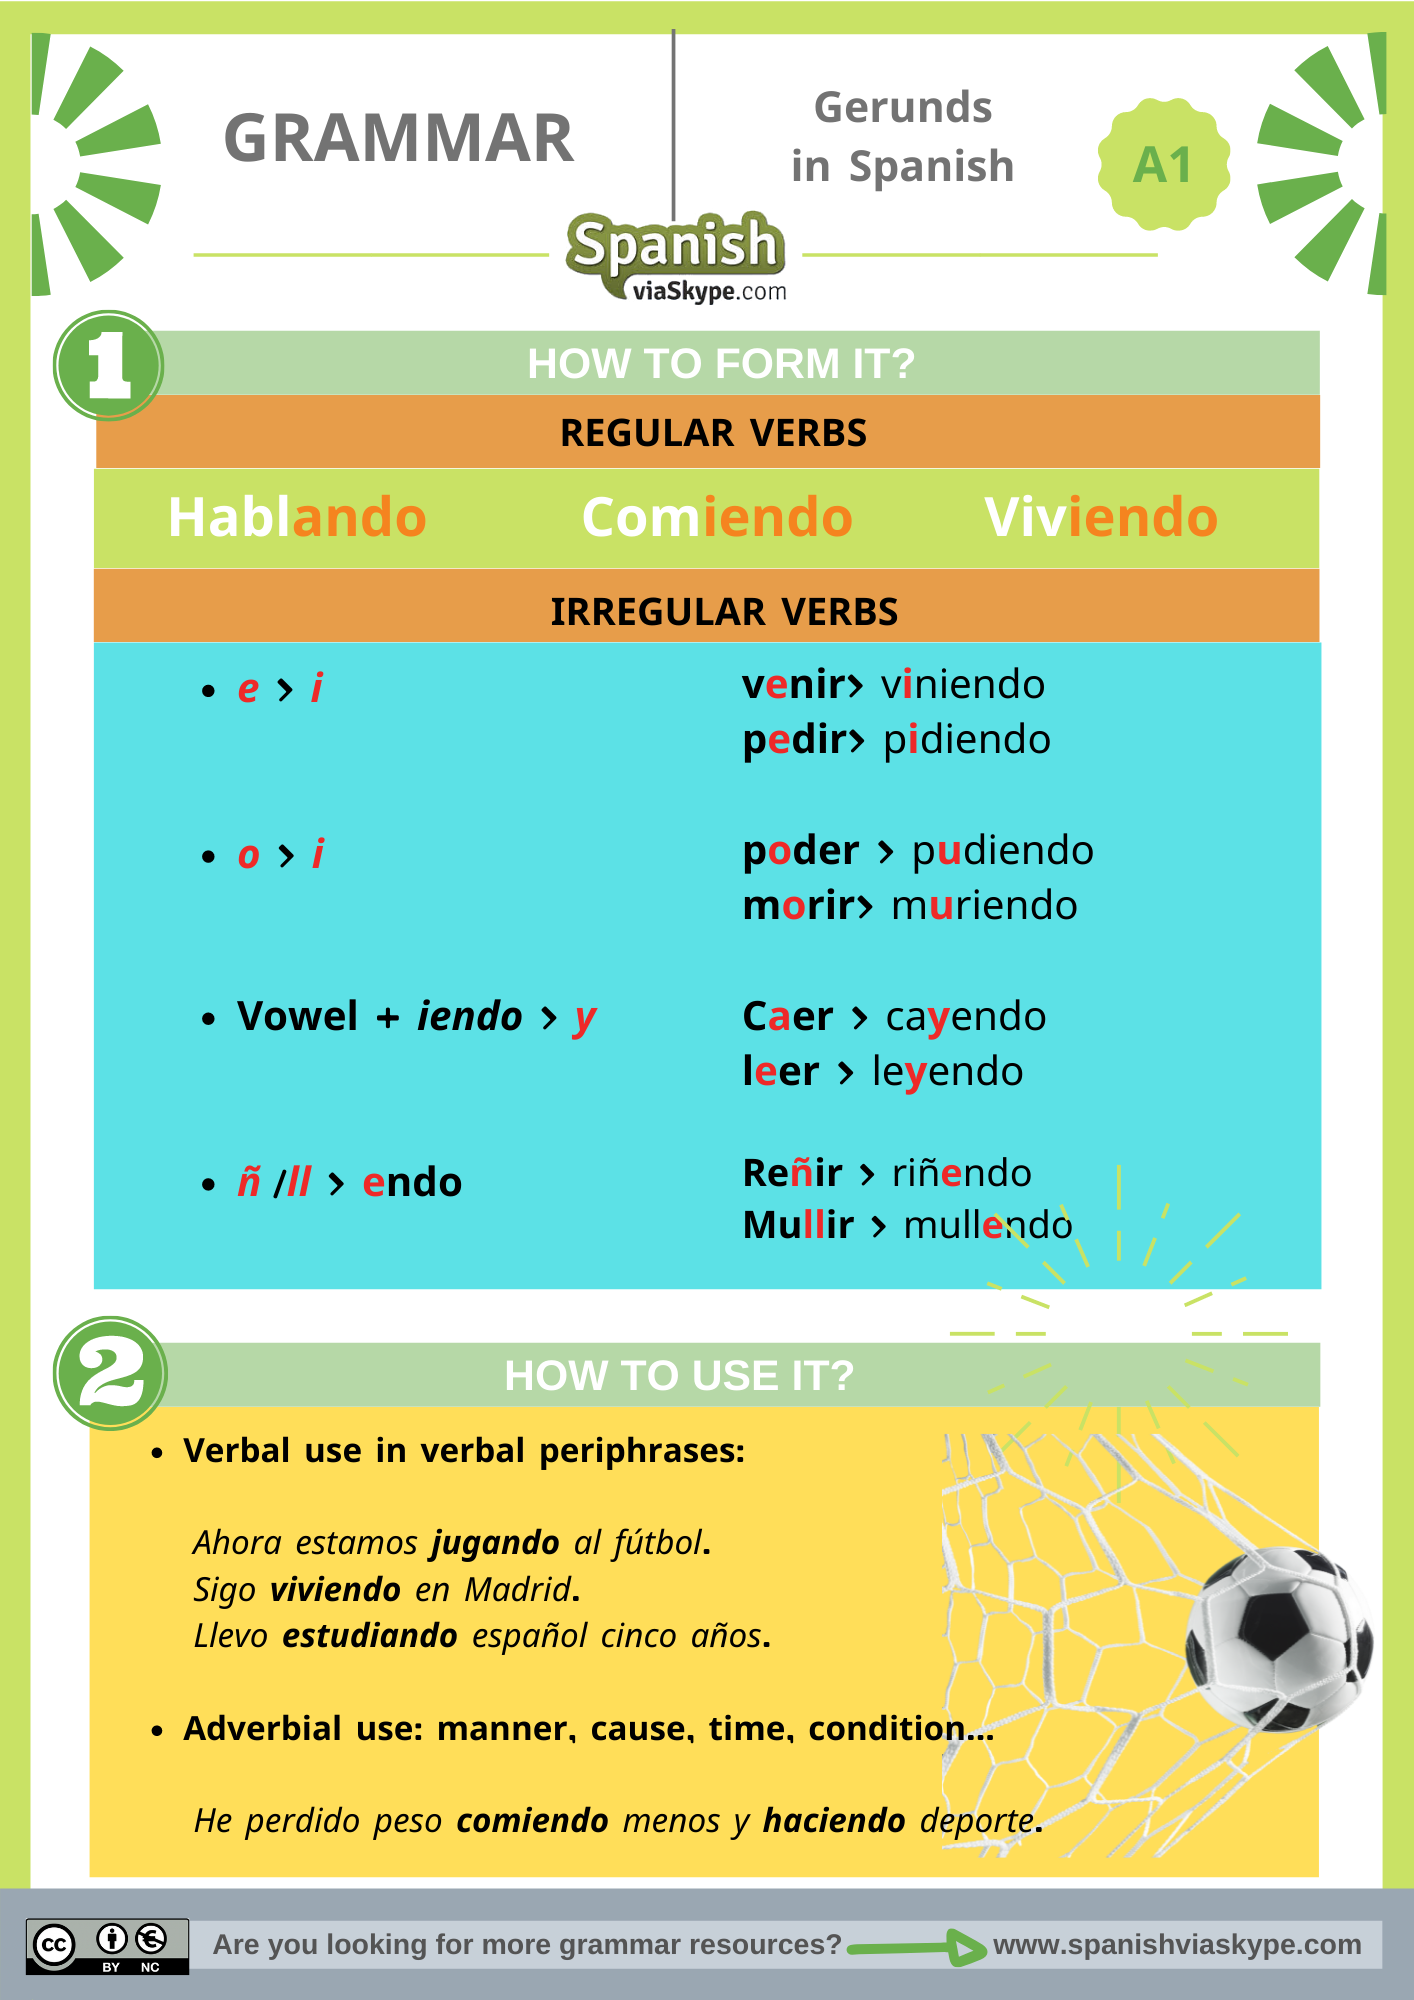 Infographics about the gerunds in Spanish: form and uses